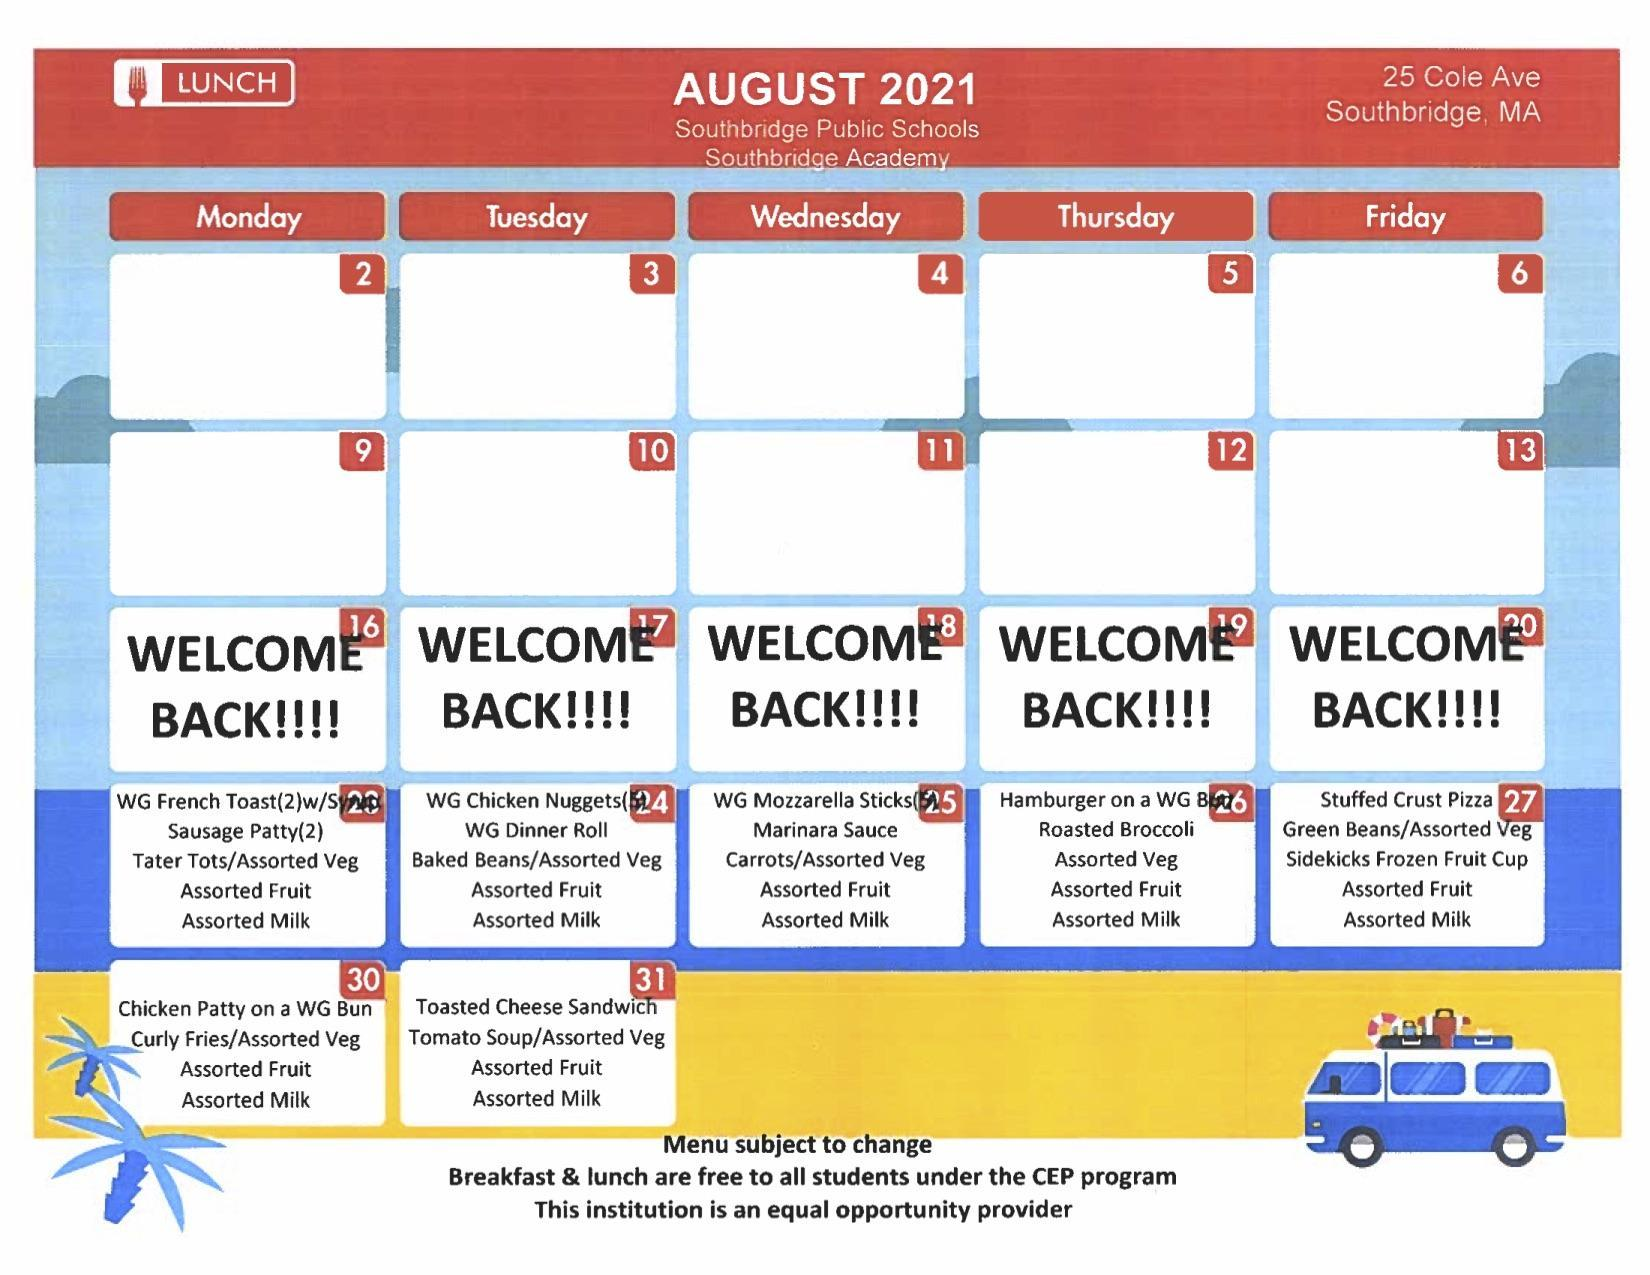 August menu for Southbridge Academy. This can also be found as a PDF on the same page